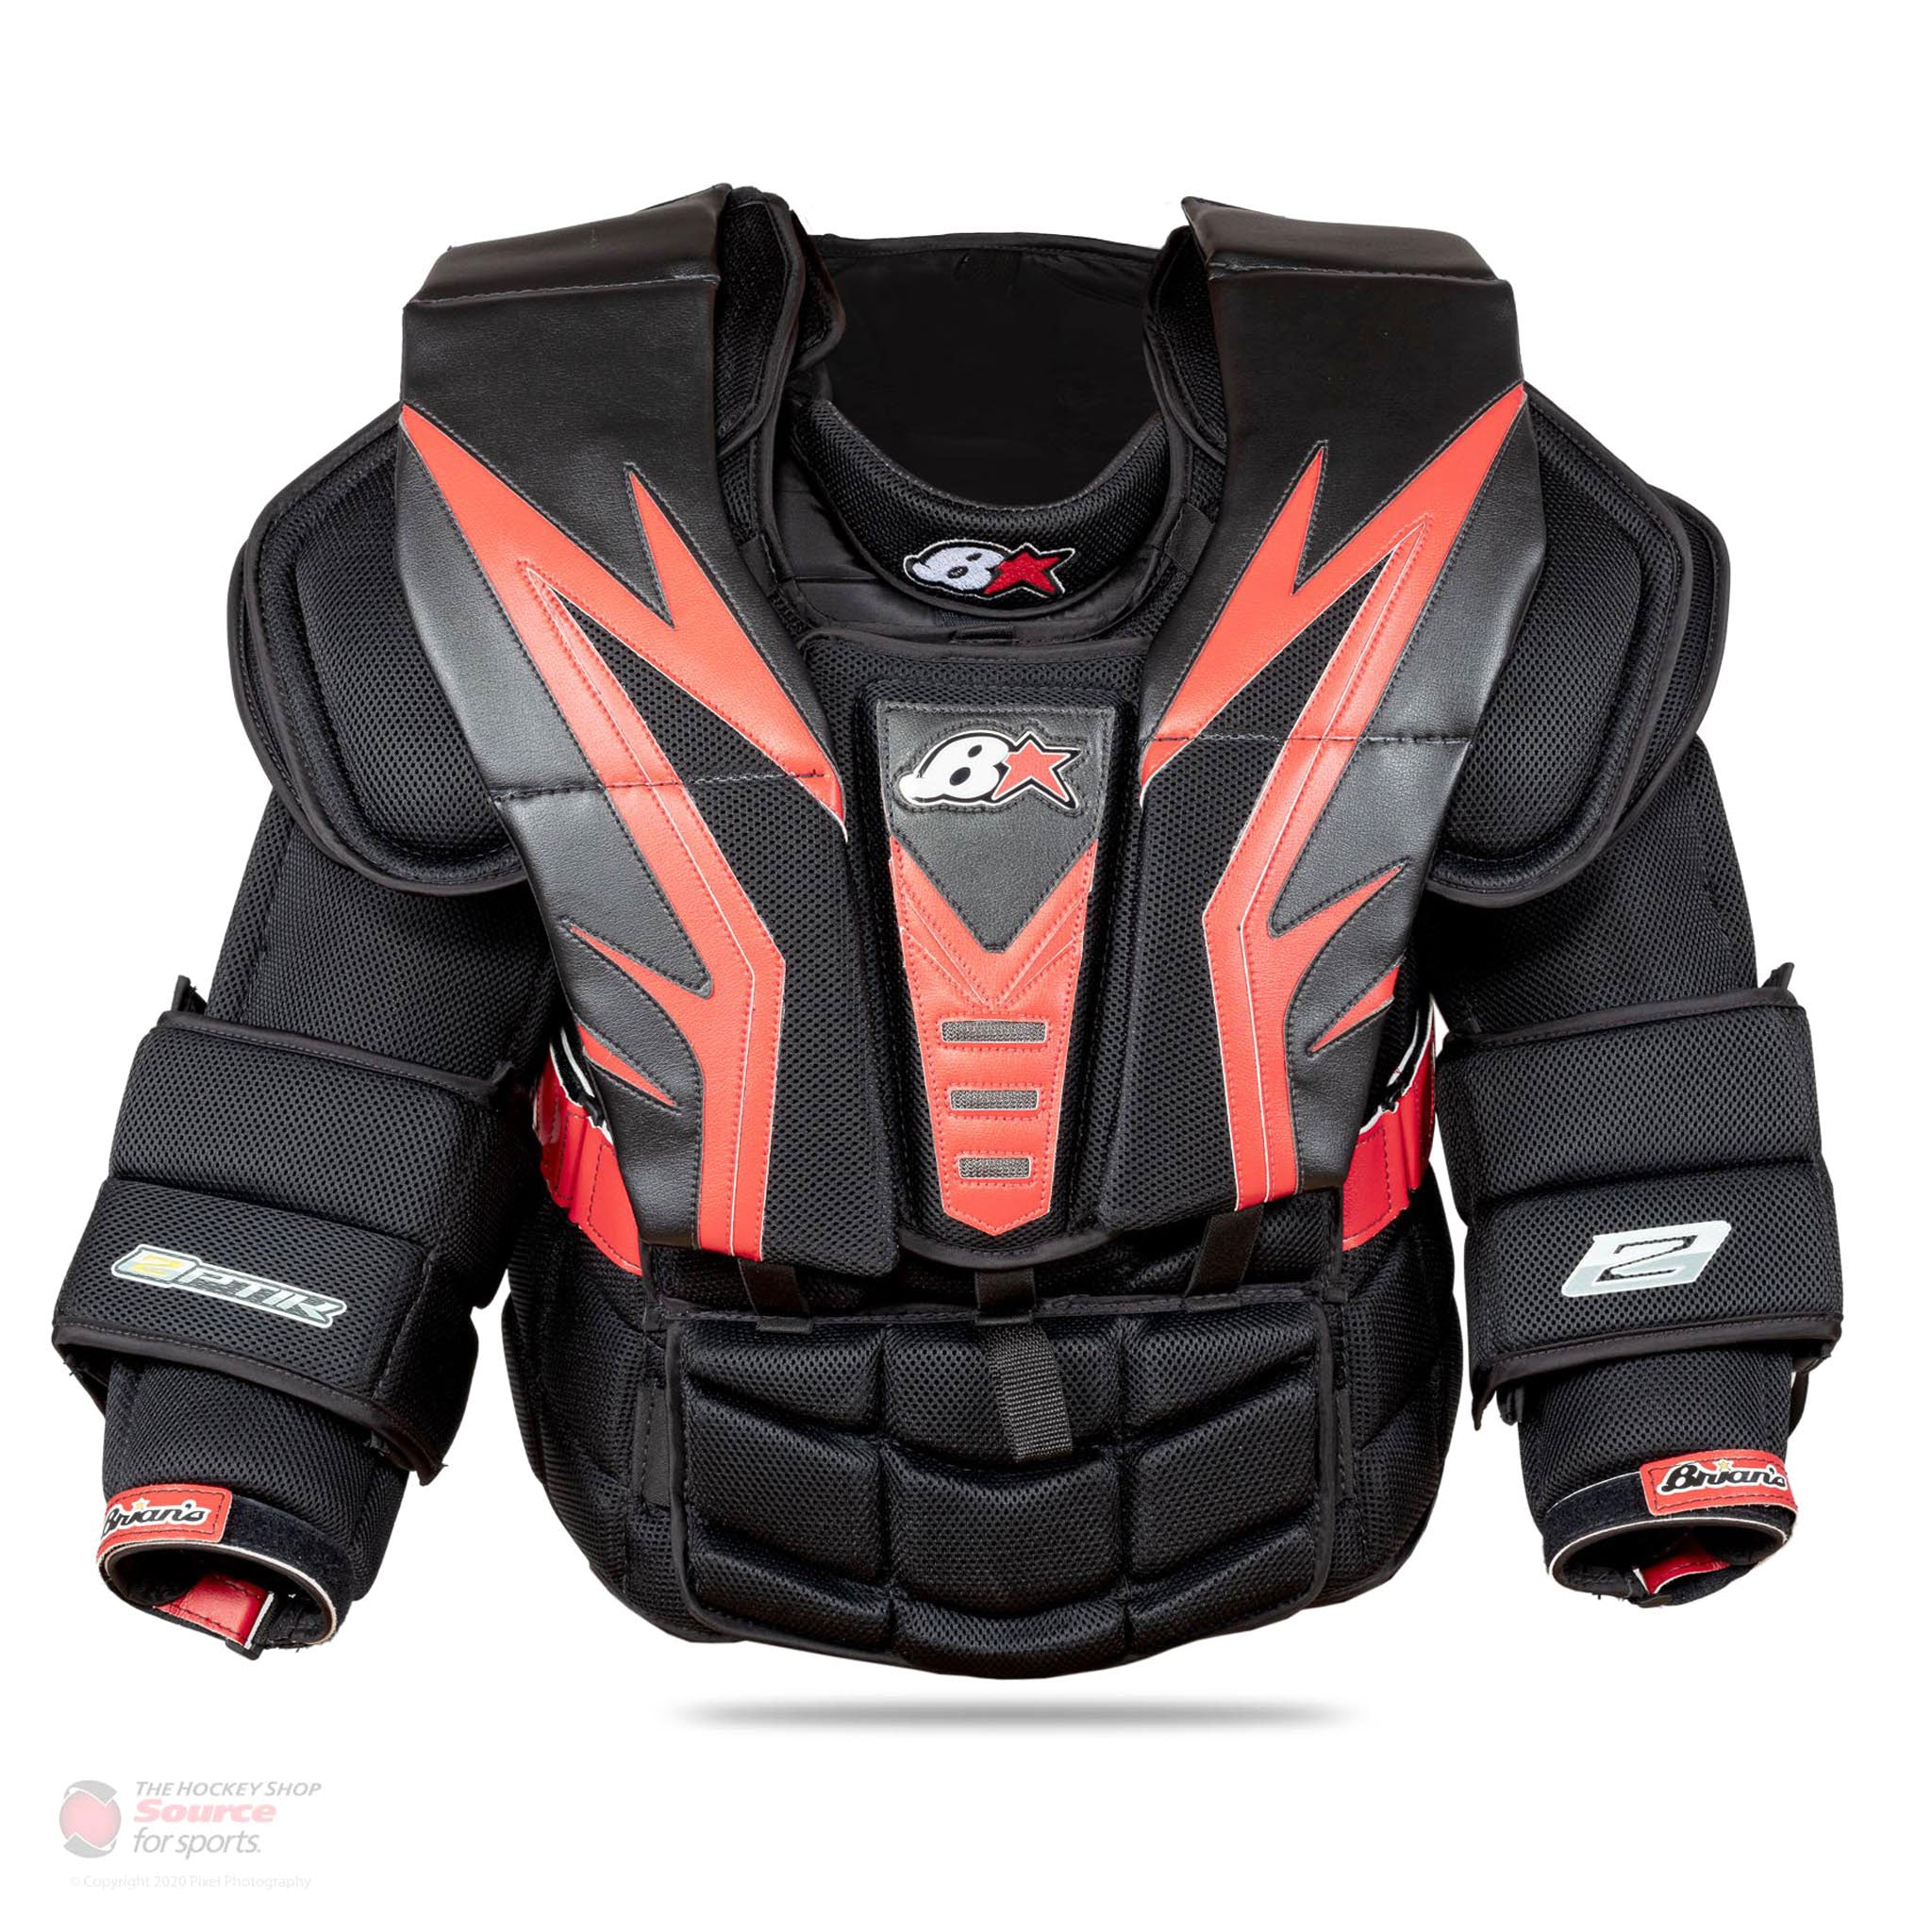 Brian's OPTiK 2 Senior Chest & Arm Protector